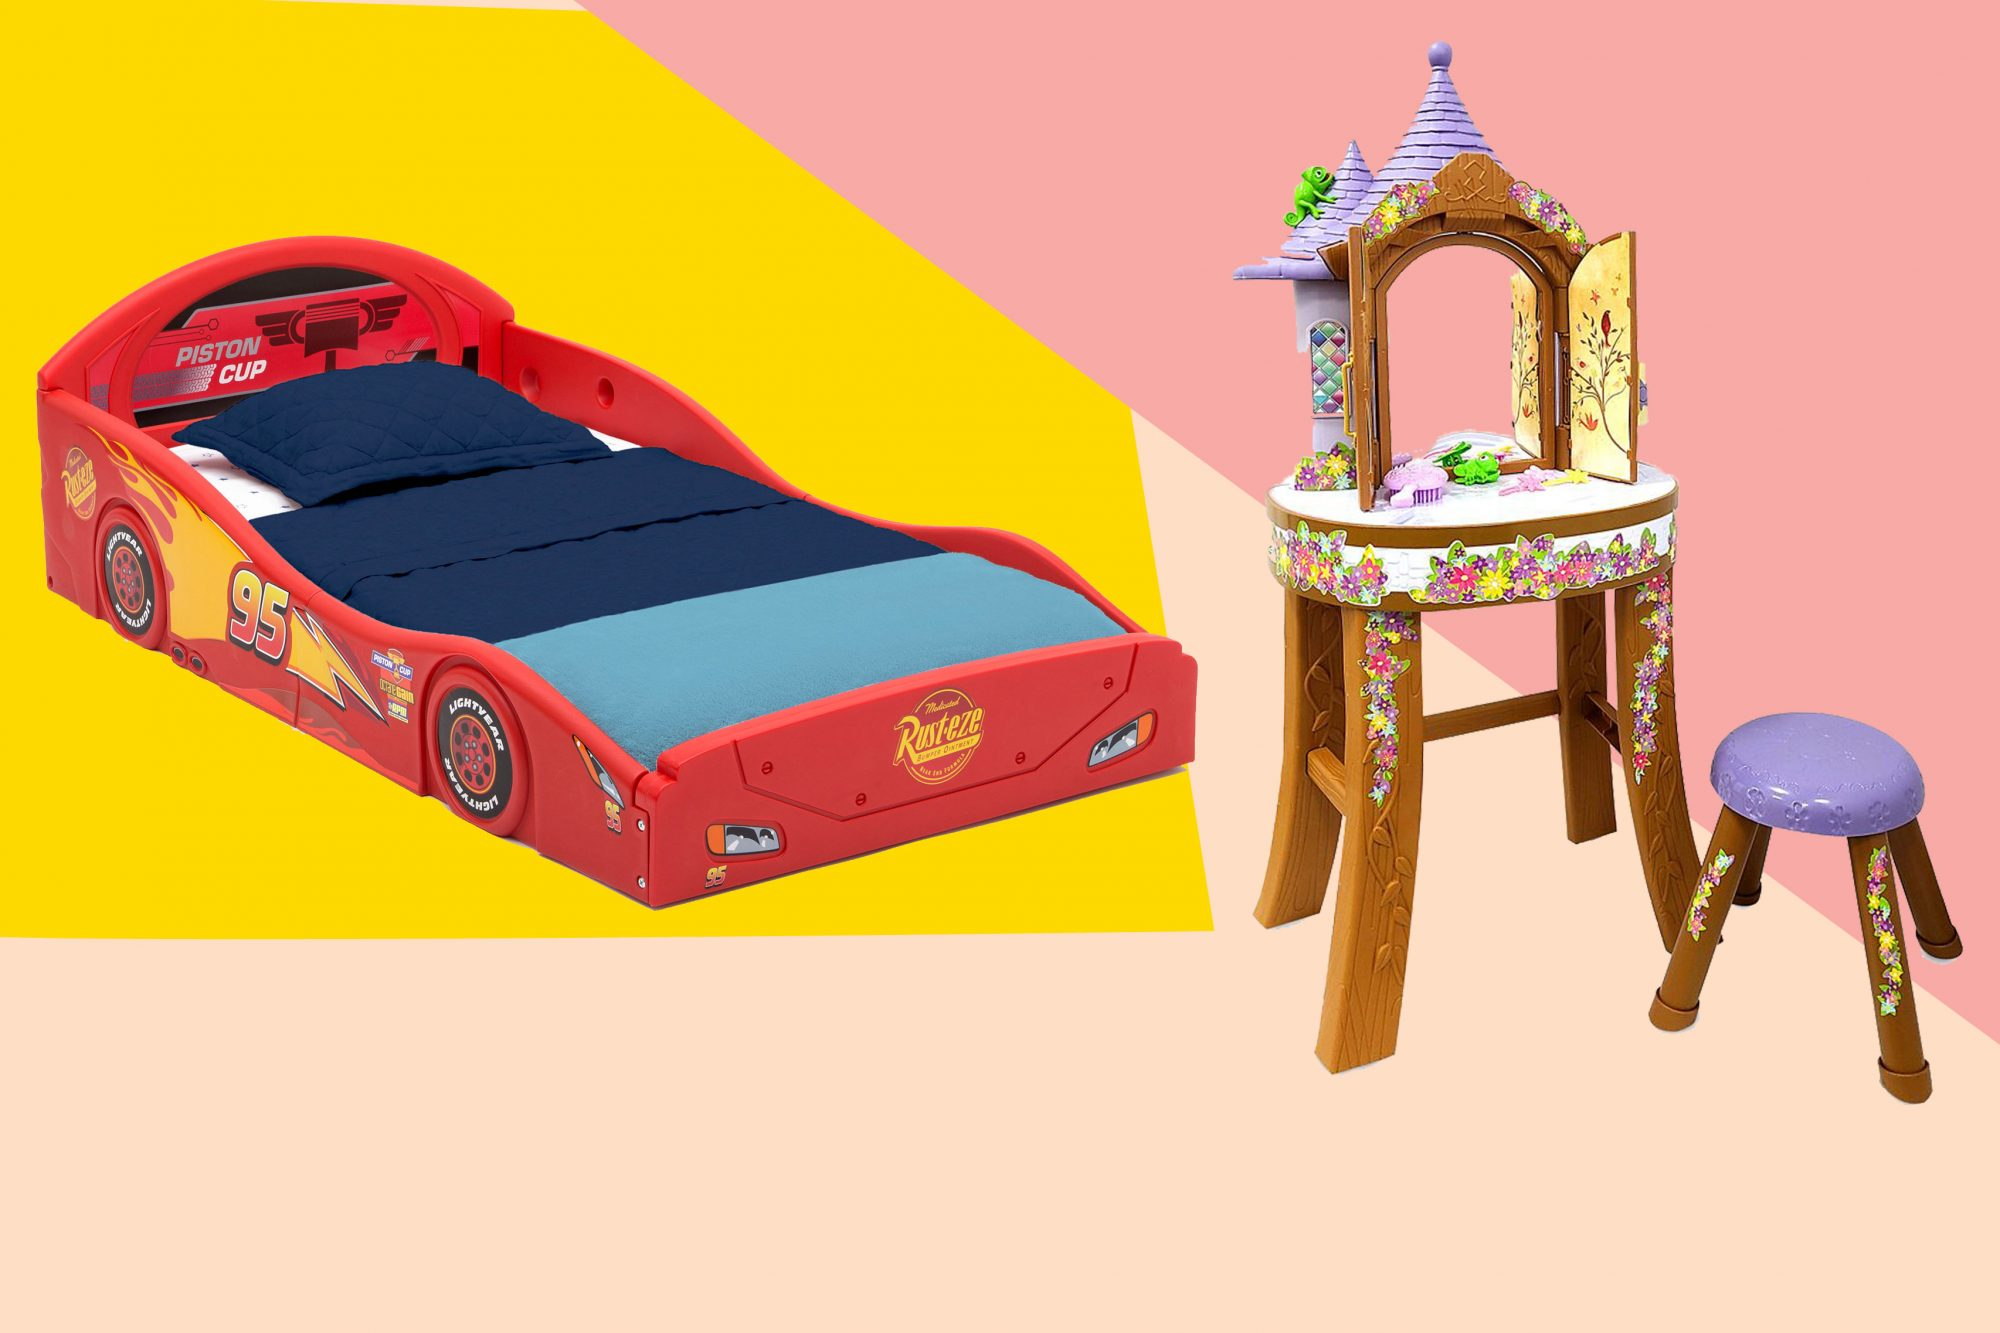 Disney Pixar Cars Lightning McQueen Bed, Rapunzel Vanity Tower Play Set